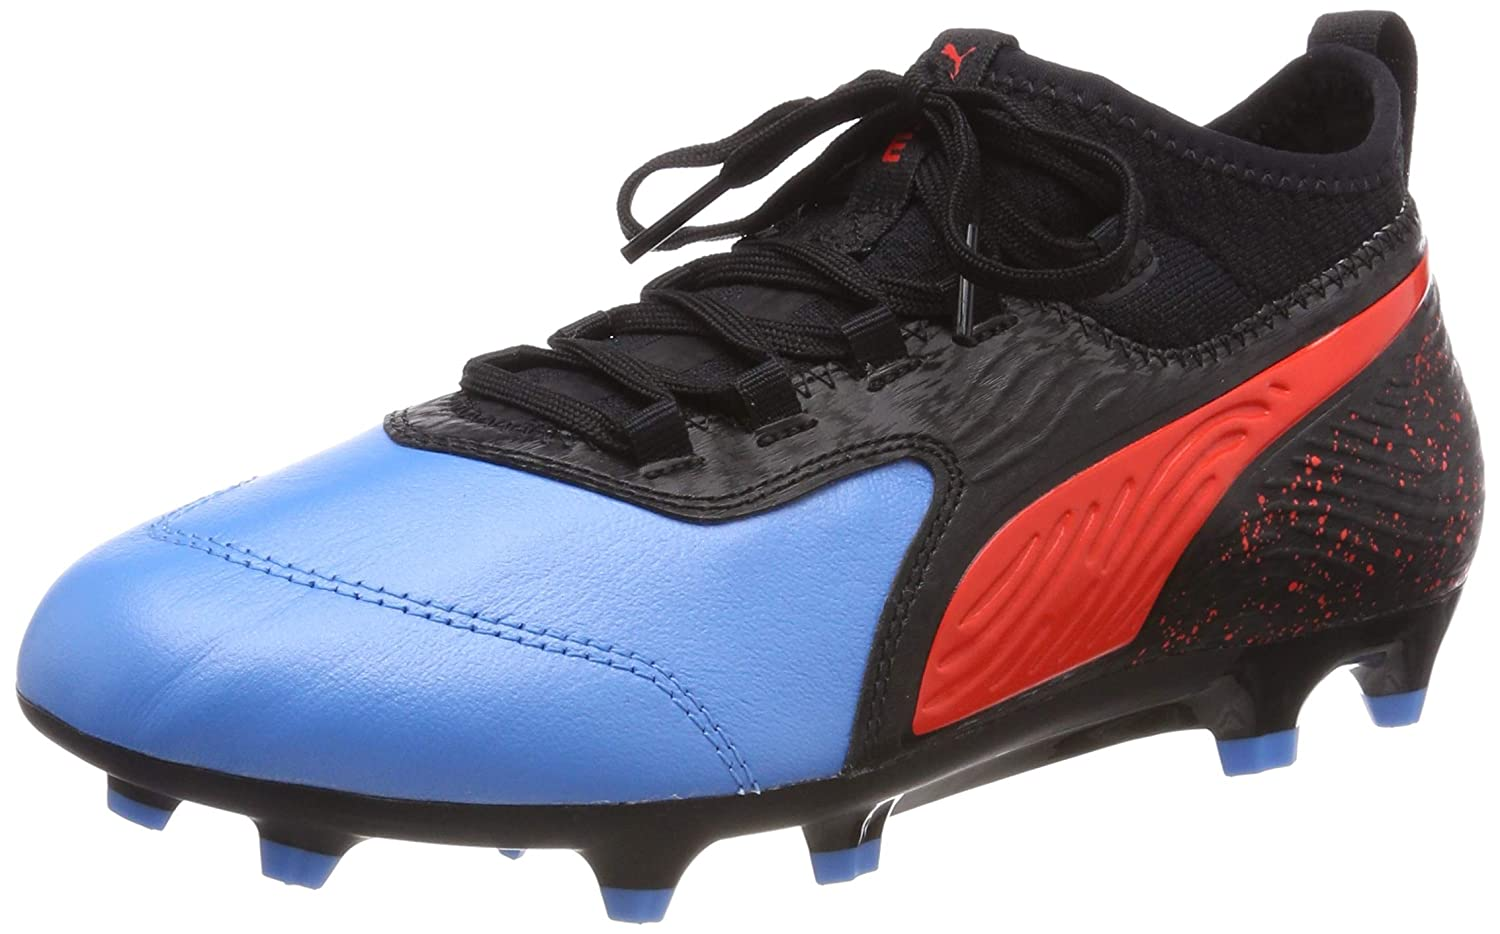 aad00812805 Amazon.com : PUMA Junior ONE 19.3 Firm Ground/Artificial Grass ...